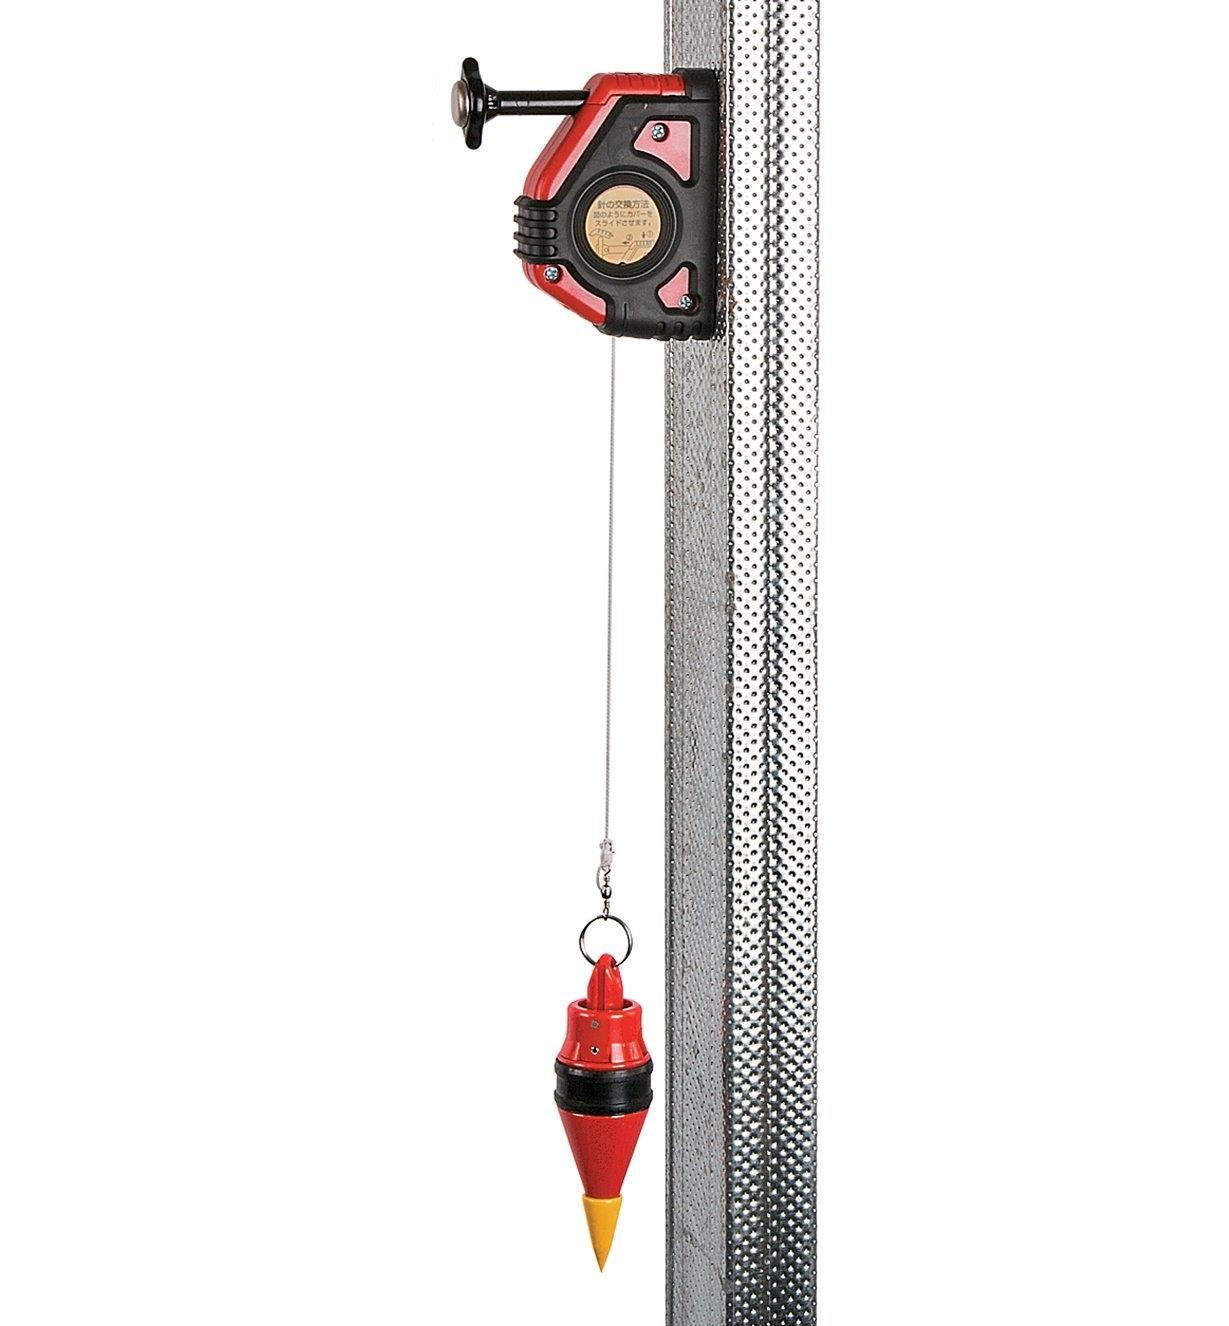 Plumb Bob & Reel attached to a steel stud